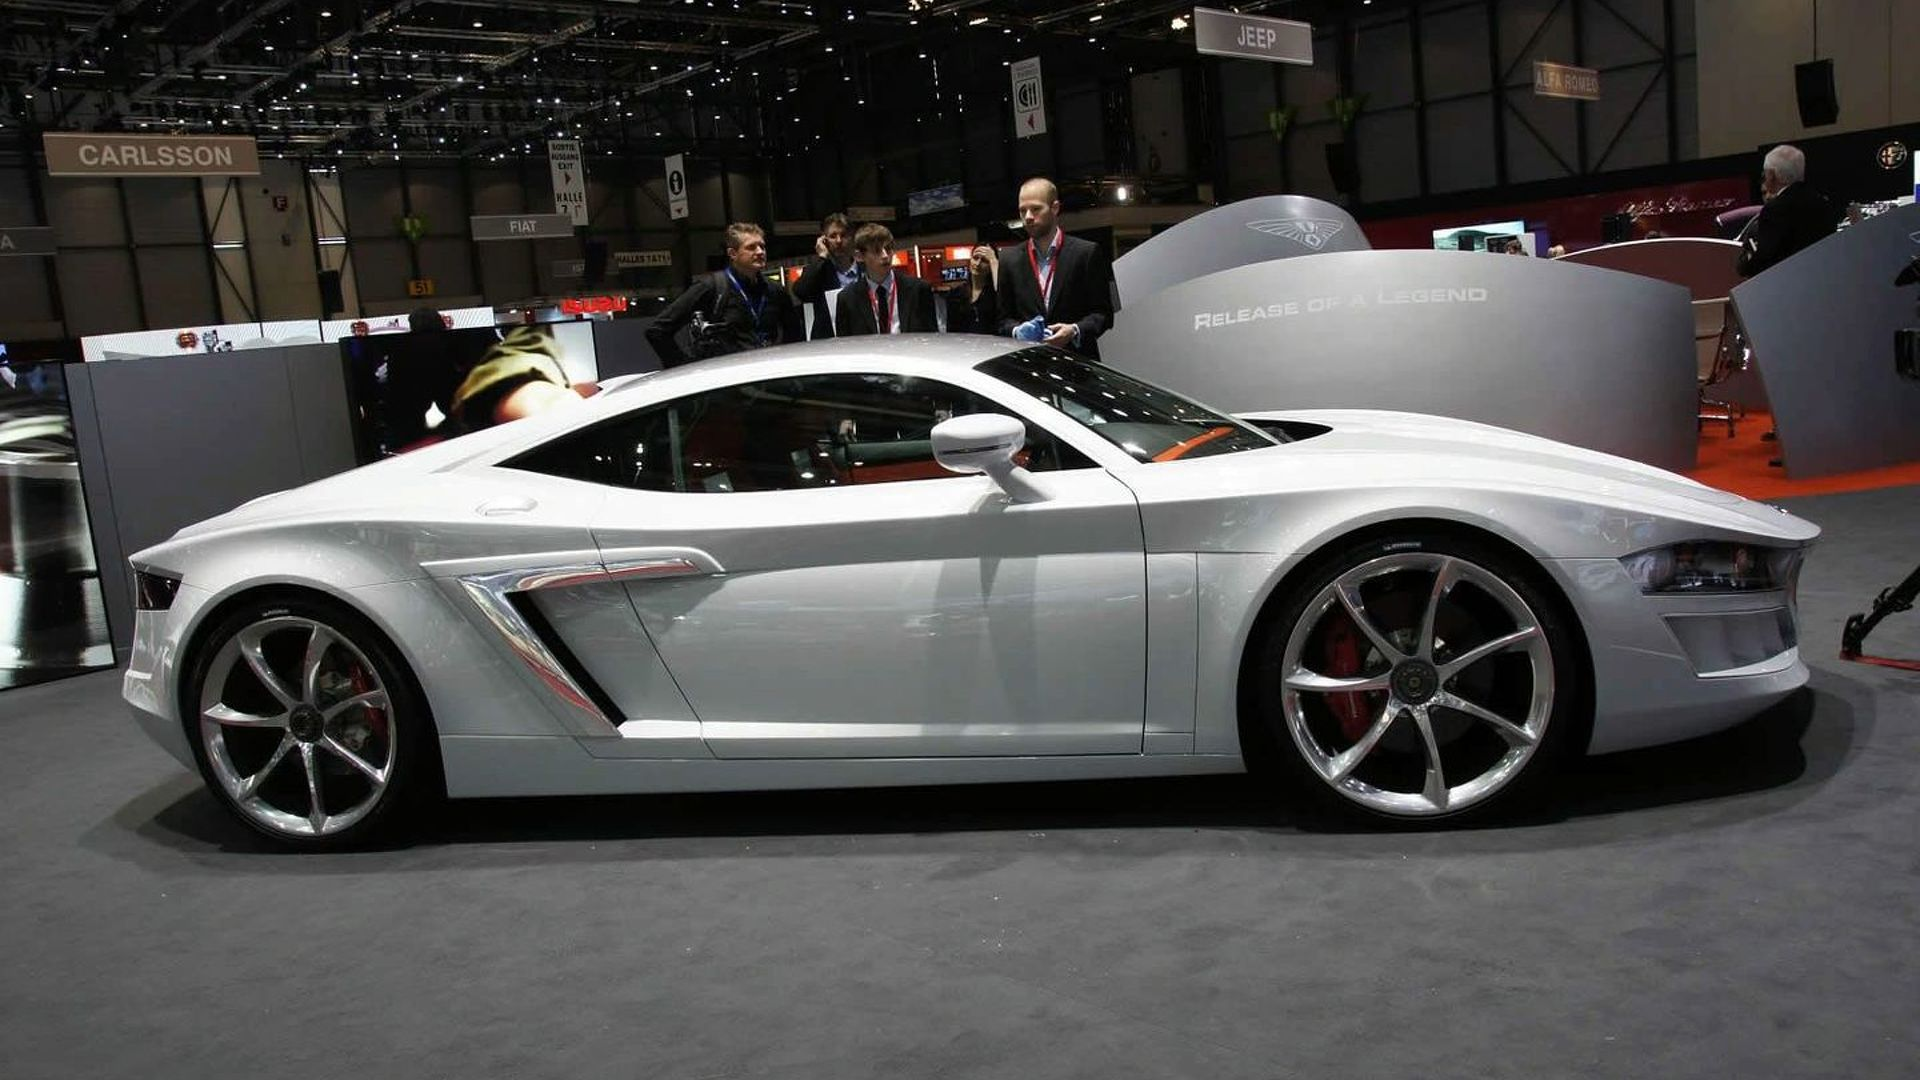 Audi R8 V10 Based Hispano Suiza World Premiere in Geneva [video]